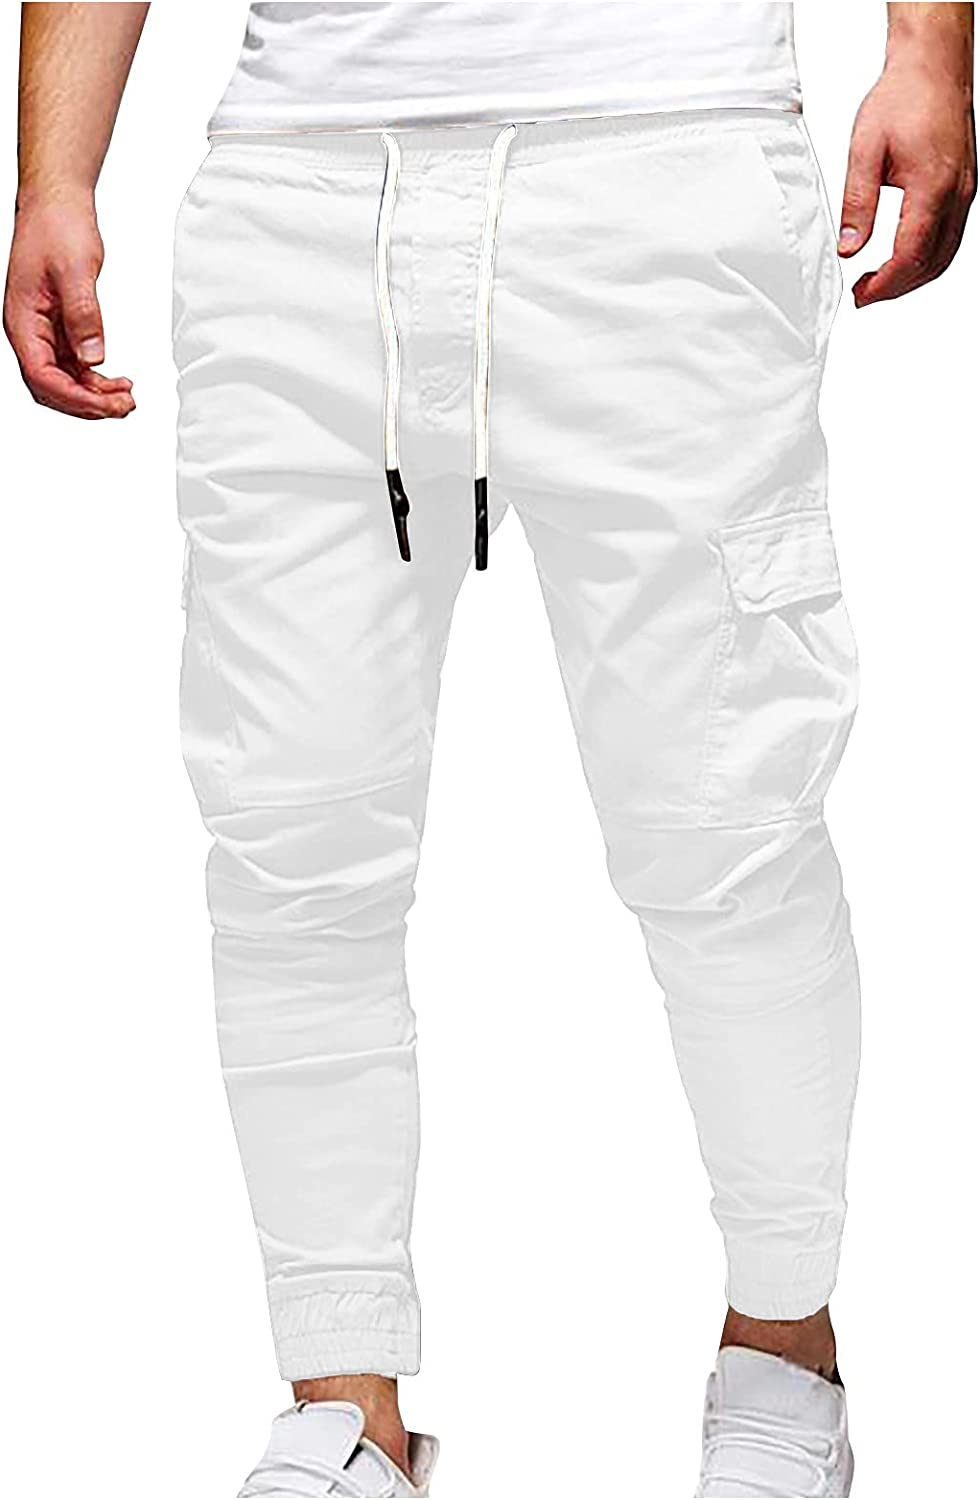 FIRERO Men's Casual Multi Pocket Pants Outdoor Relaxed Slim Fit Trousers Work Cargo Pants